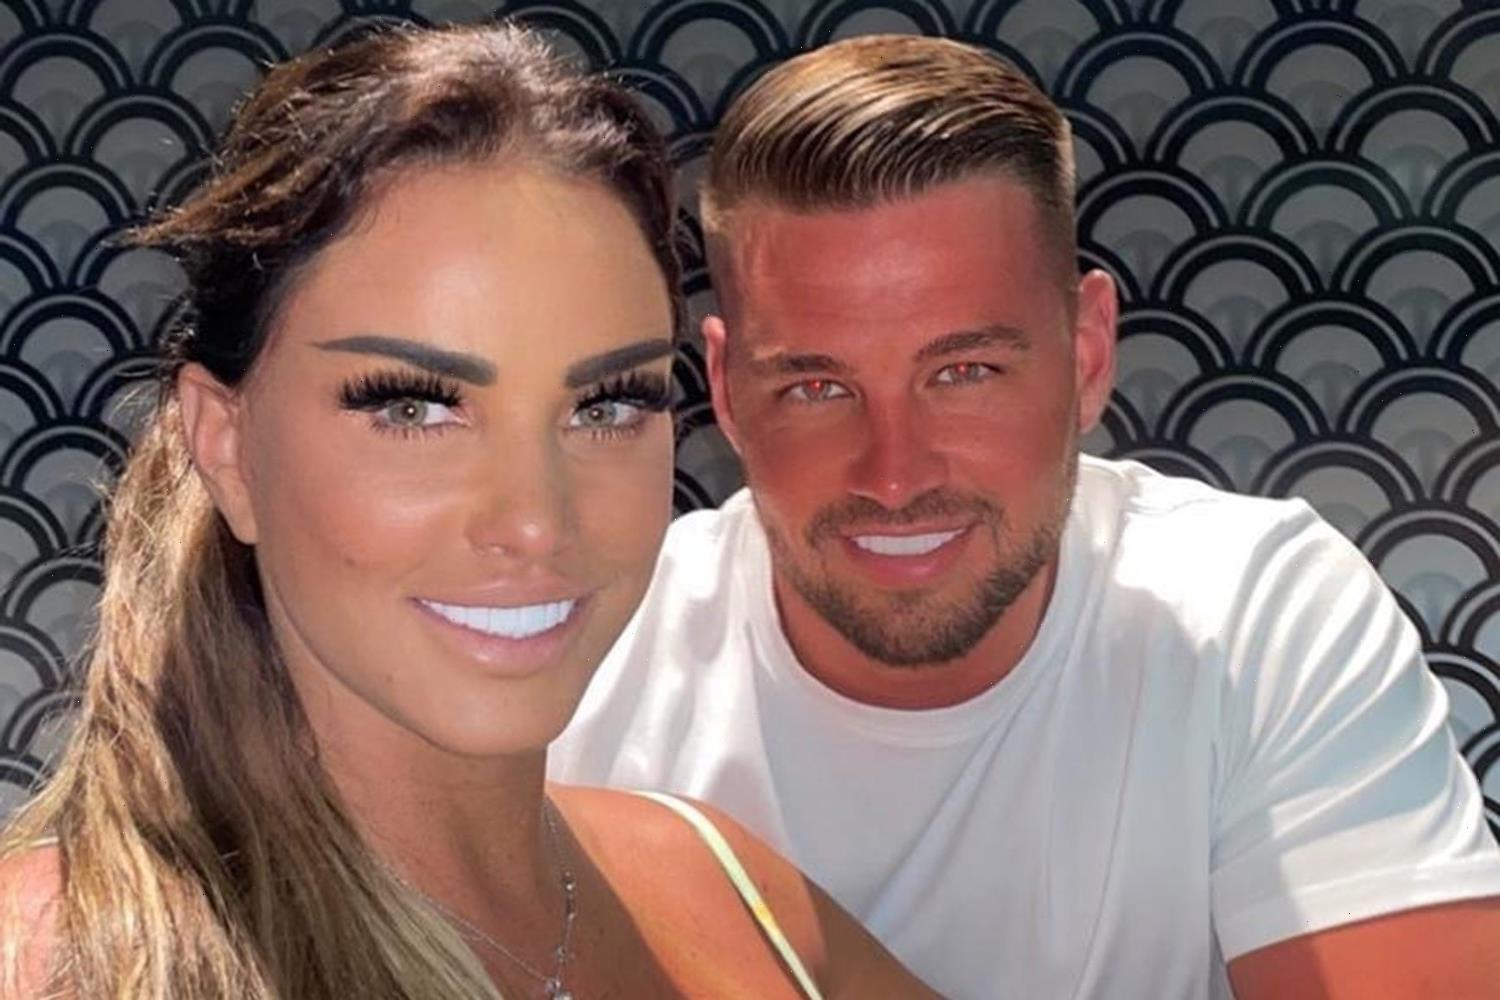 Katie Price's fiance Carl Woods gives fans a closer look at HUGE tattoo of her face – and it looks exactly like her